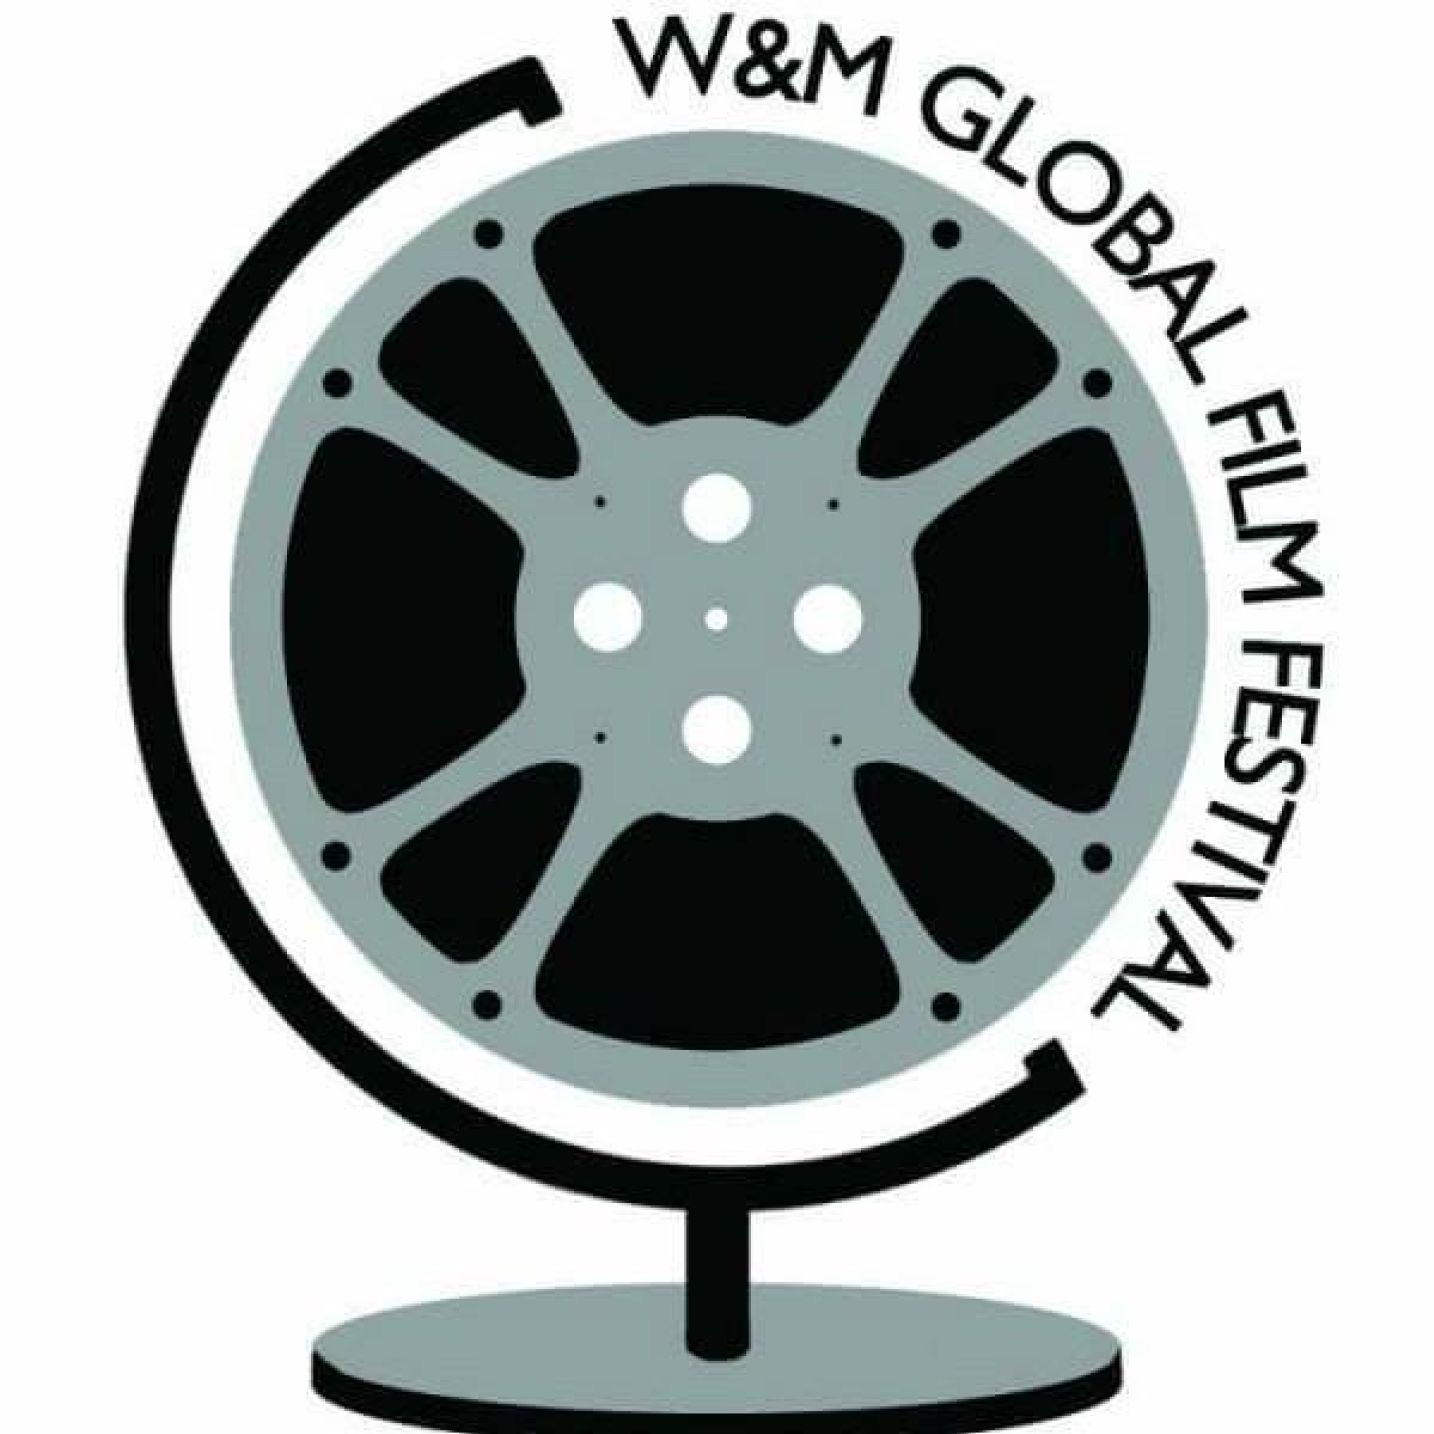 W&M Global Film Festival